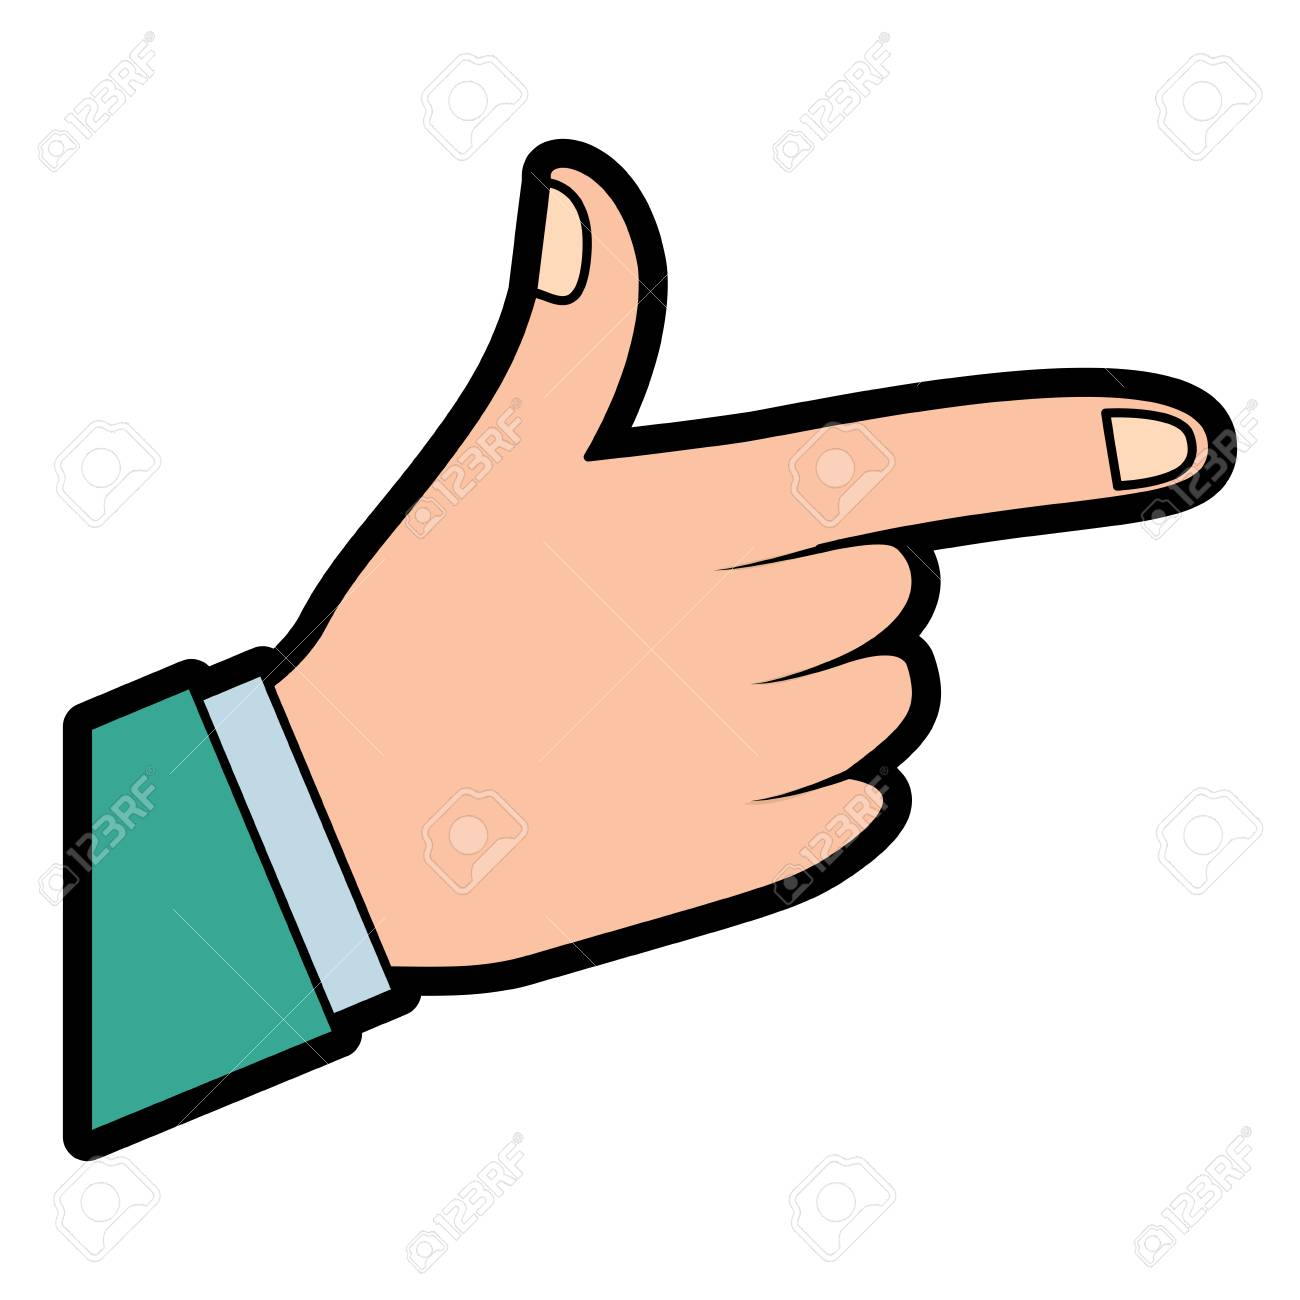 hand indicating or showing direction by pointing a finger vector rh 123rf com pointing finger vector graphic pointing finger vector graphic